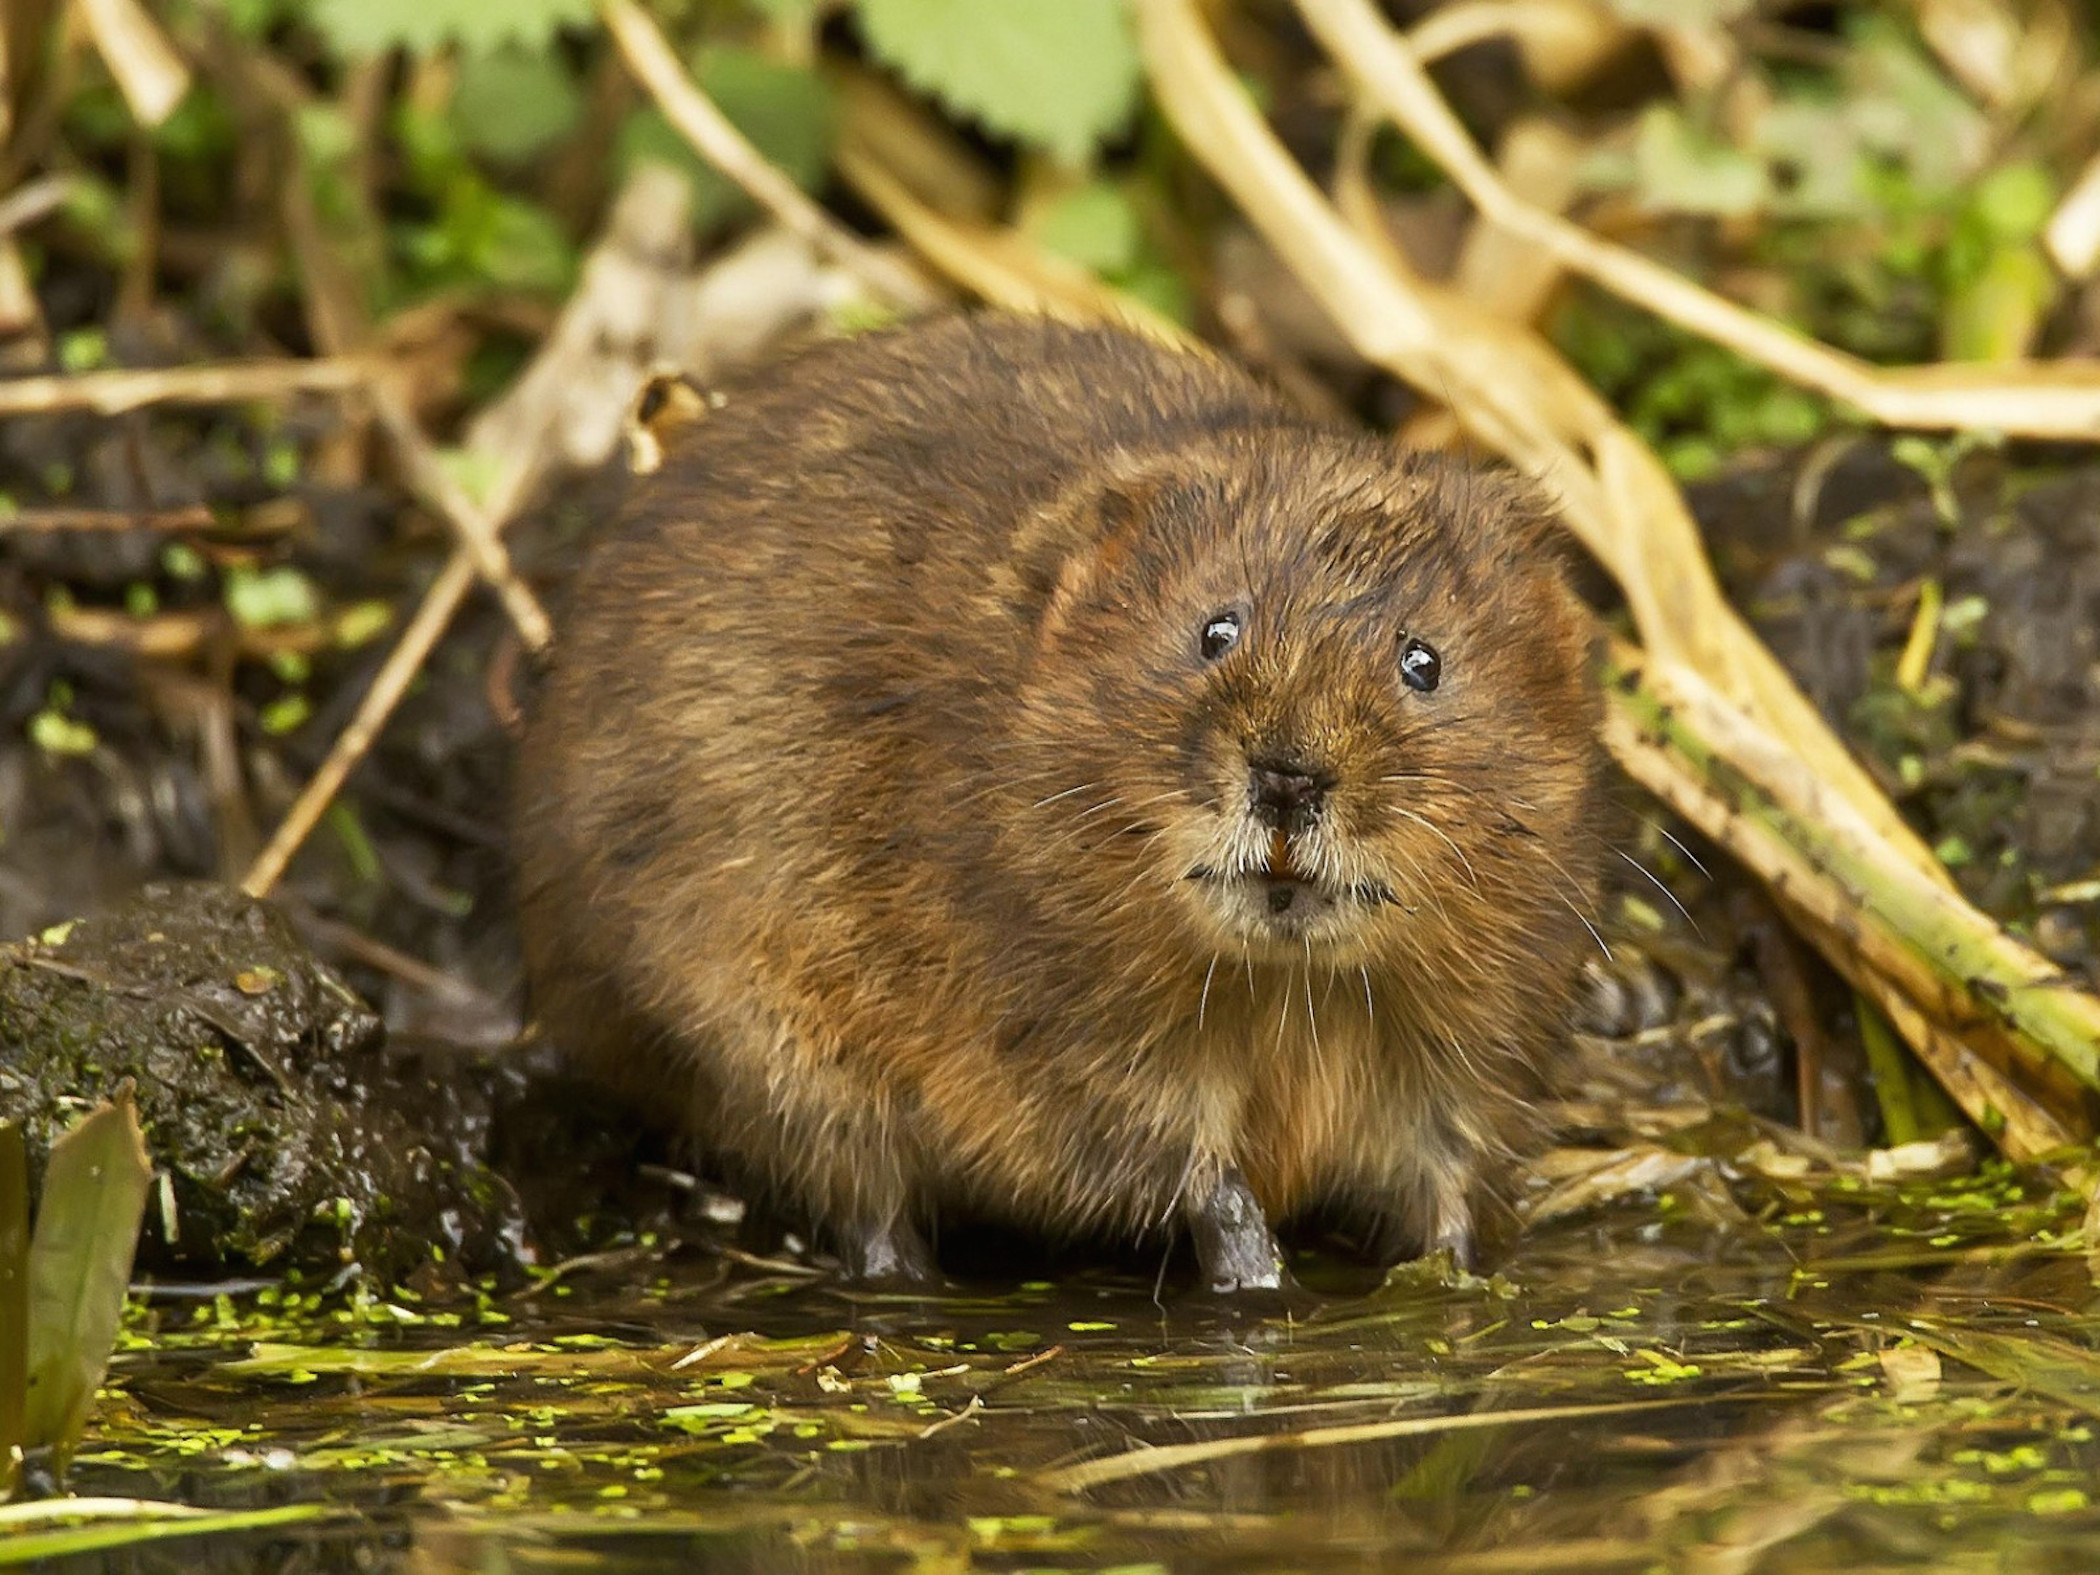 Muskrat Animal Wallpaper Hd Backgrounds Cool Wallpapers